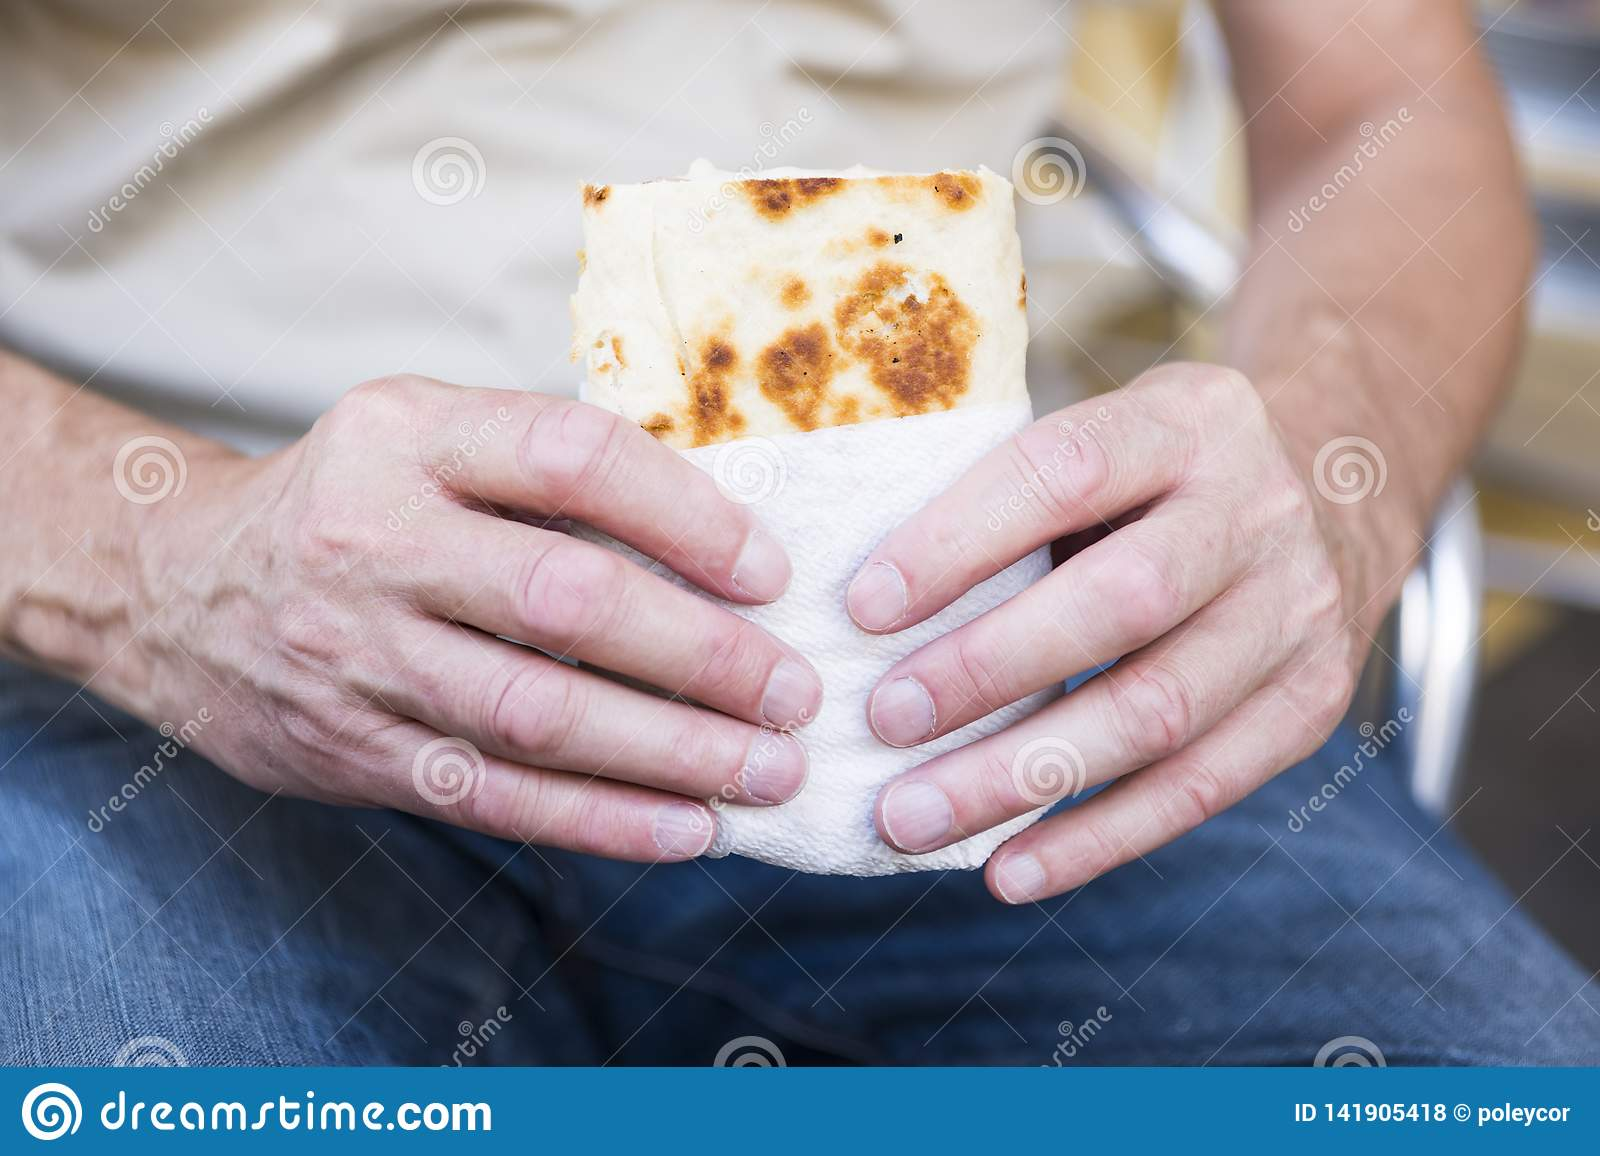 Man holding a wrap, bread, piadina, against white blur background